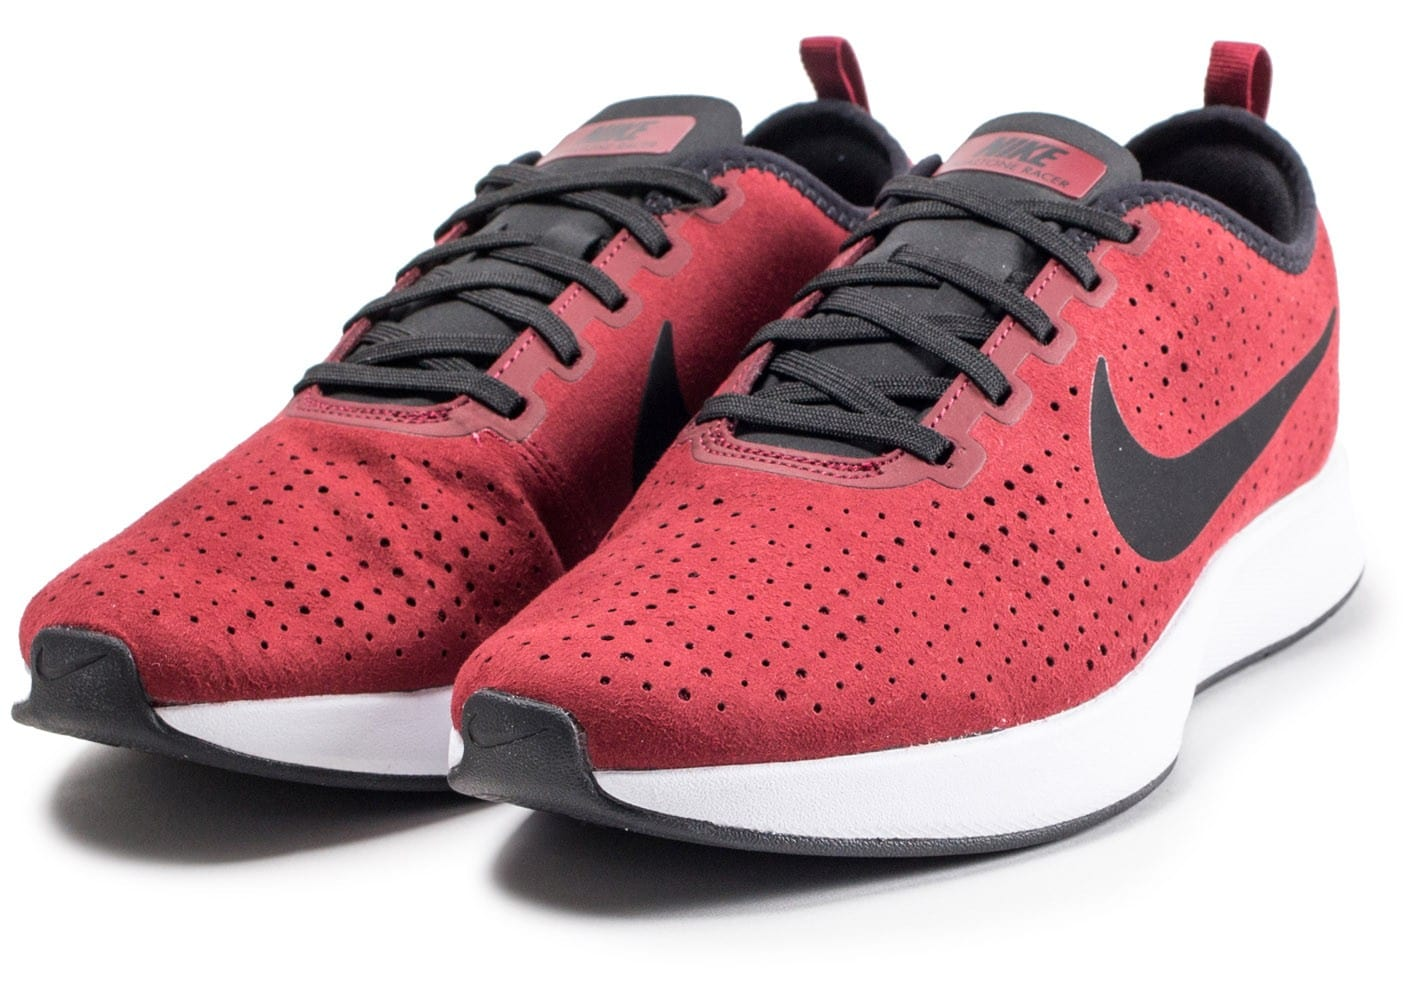 low priced 3a682 1084a ... Chaussures Nike Dualtone Racer rouge vue intérieure ...